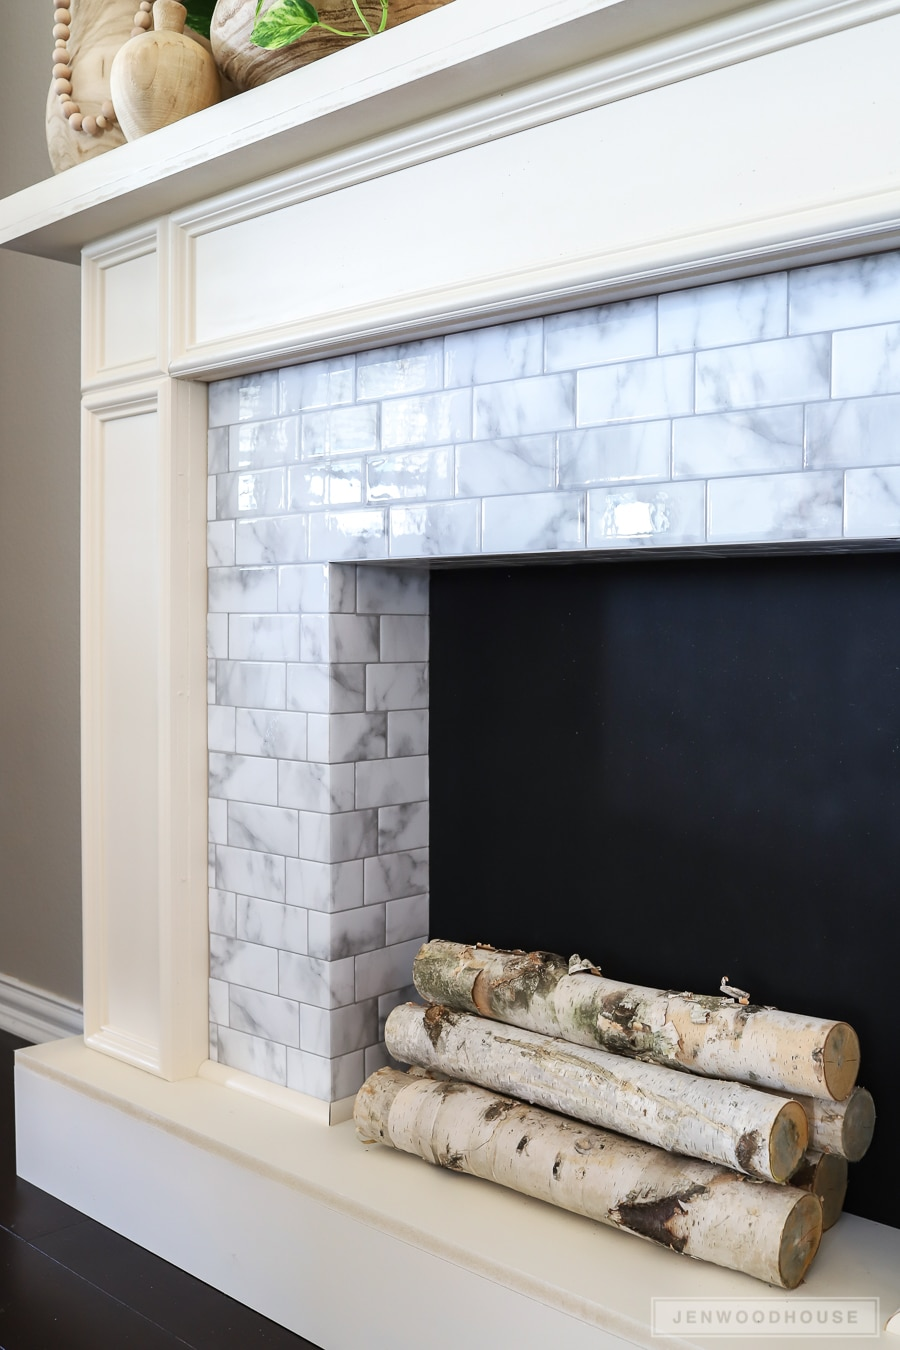 DIY Faux Fireplace Featuring Smart Tiles Adhesive Tiles - no messy grout! No fancy tools!